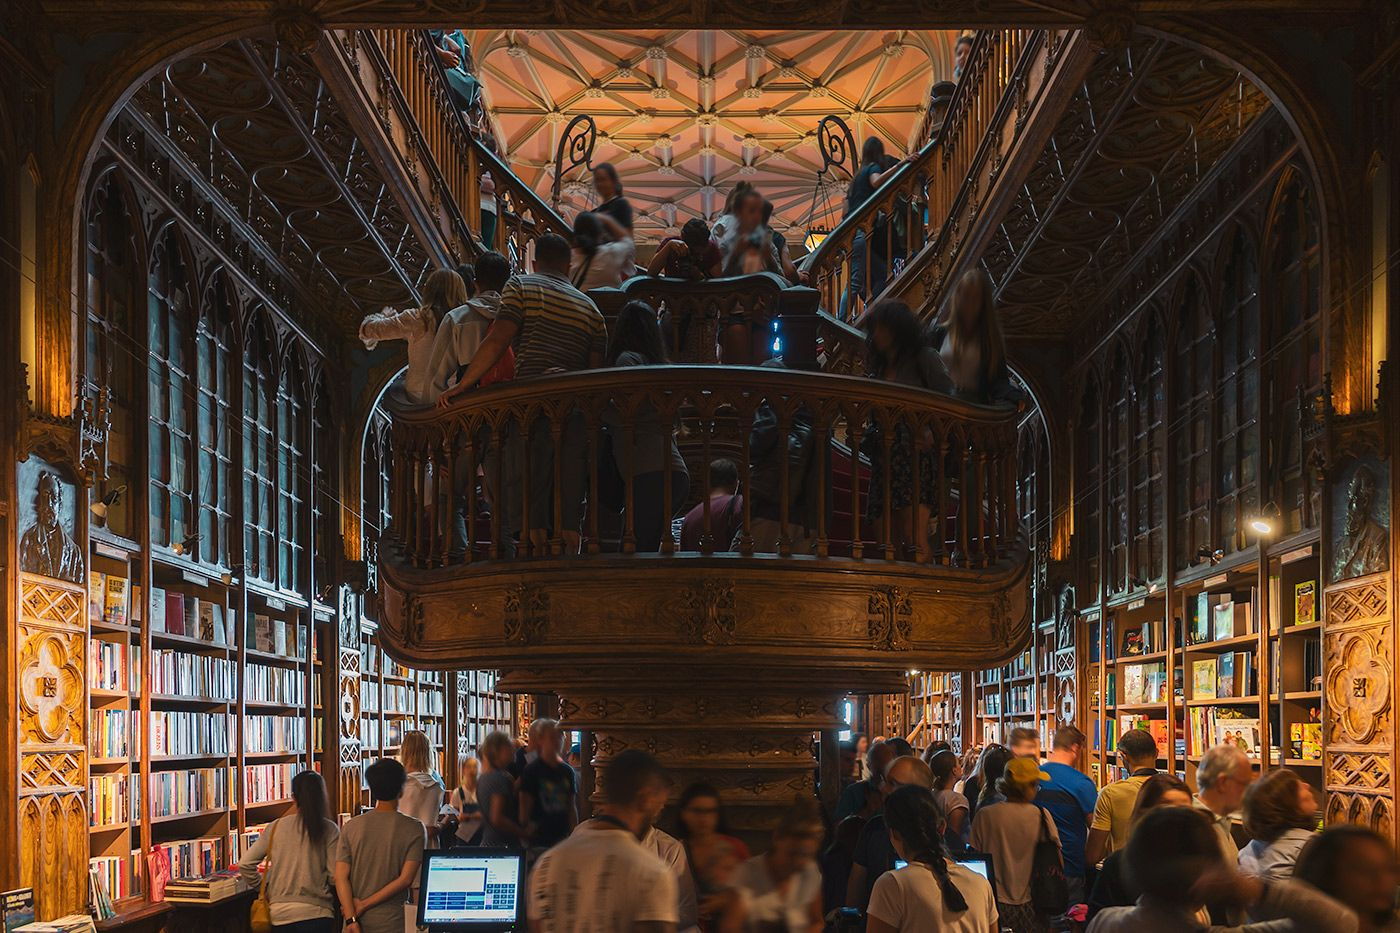 Livraria Lello - the bookstore which inspired Harry Potter #portugal #bookstore #harrypotter #livraria #porto #portwine #douro #vinhoverde #sunsetwithbubbles